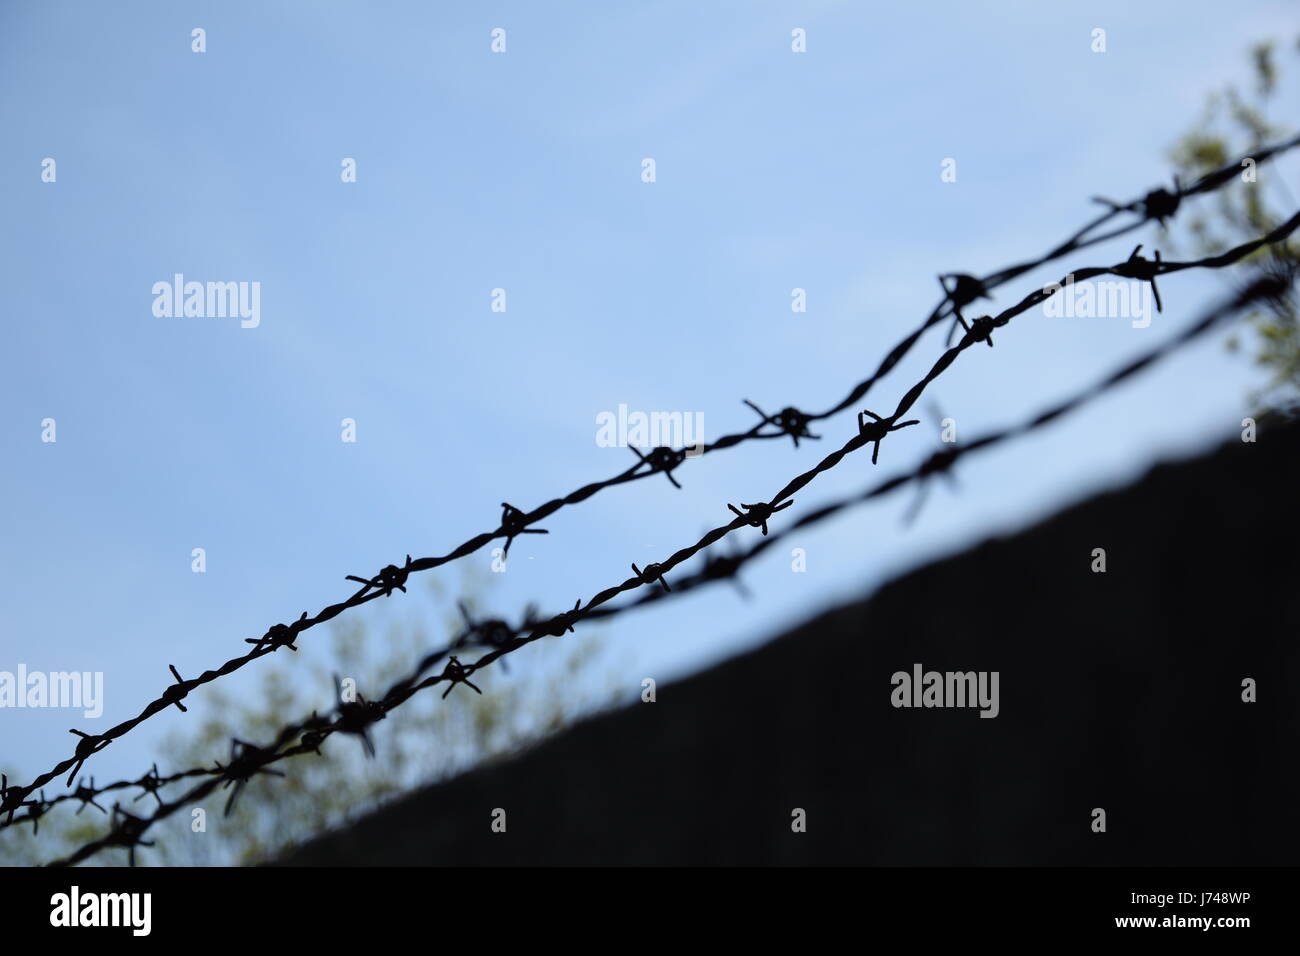 Barbed wire fence against blue sky - Stock Image